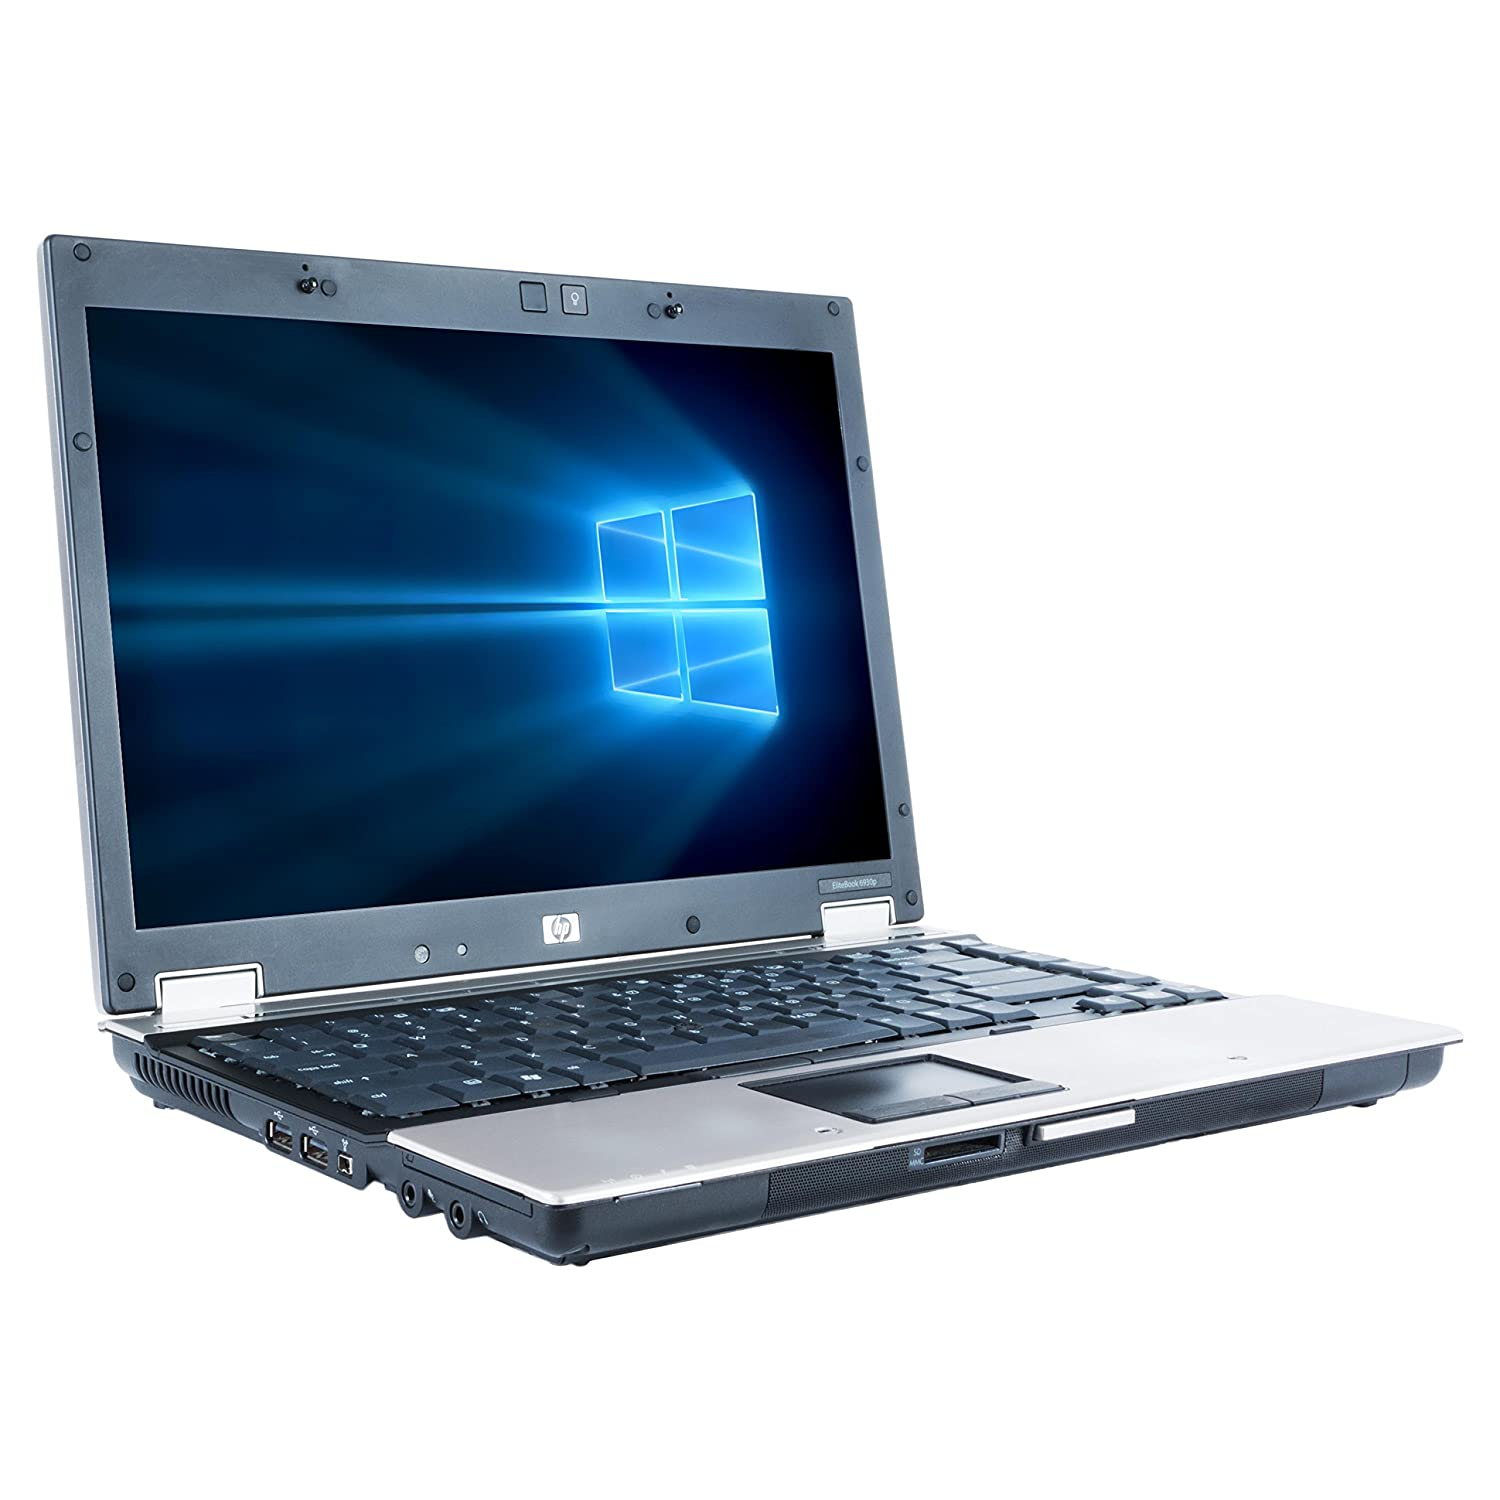 Amazon.com: HP EliteBook 6930p 14 Inch Business High Performance Laptop  Computer(Intel Core 2 Duo P8400 2.26GHz Duo Core, 2G RAM DDR2, 120G HDD,  DVD-ROM, ...